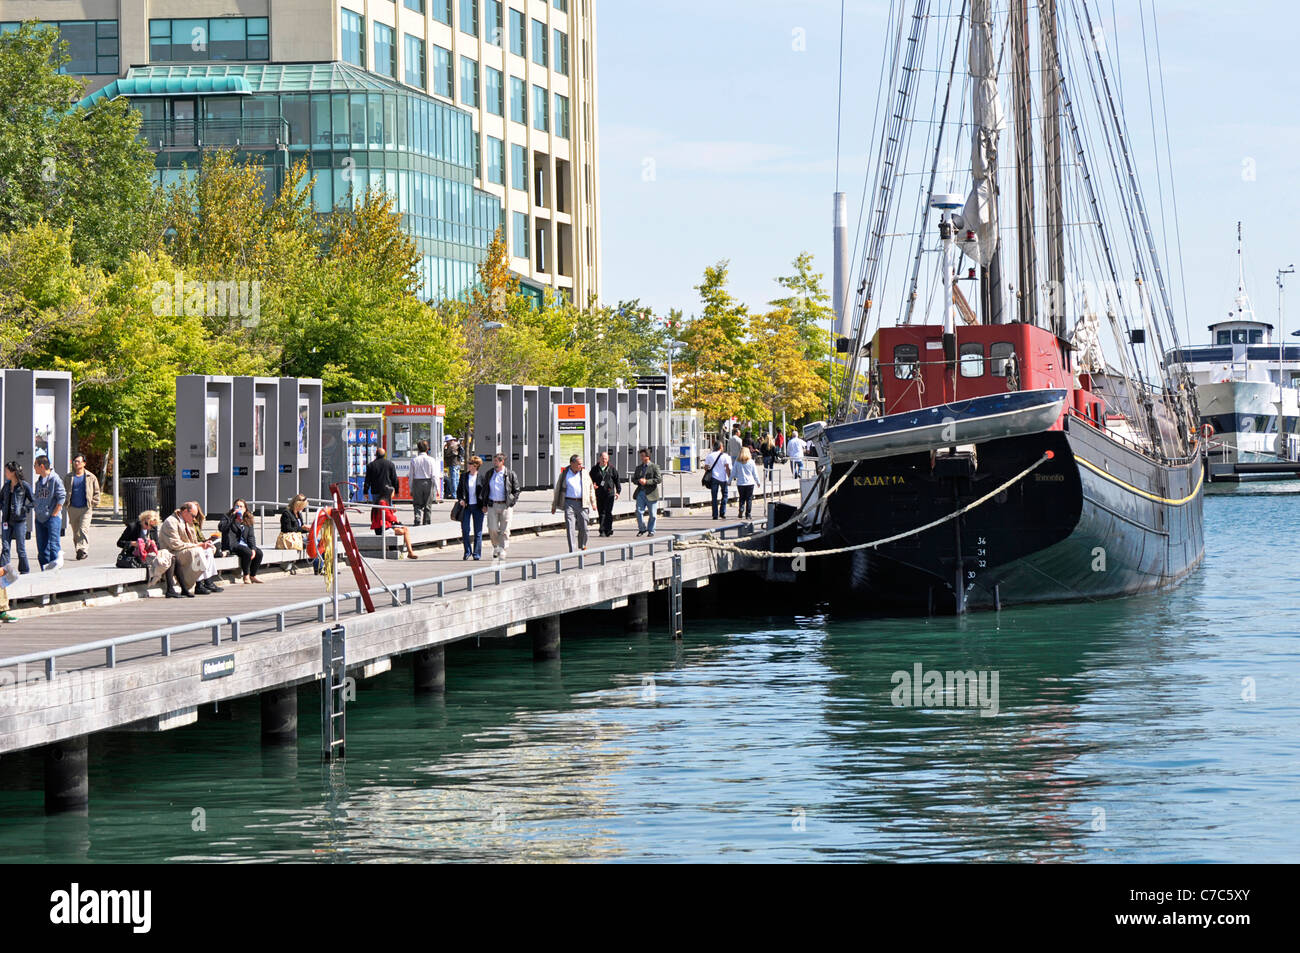 Toronto Harbourfront, Queens Quay, Boats - Stock Image